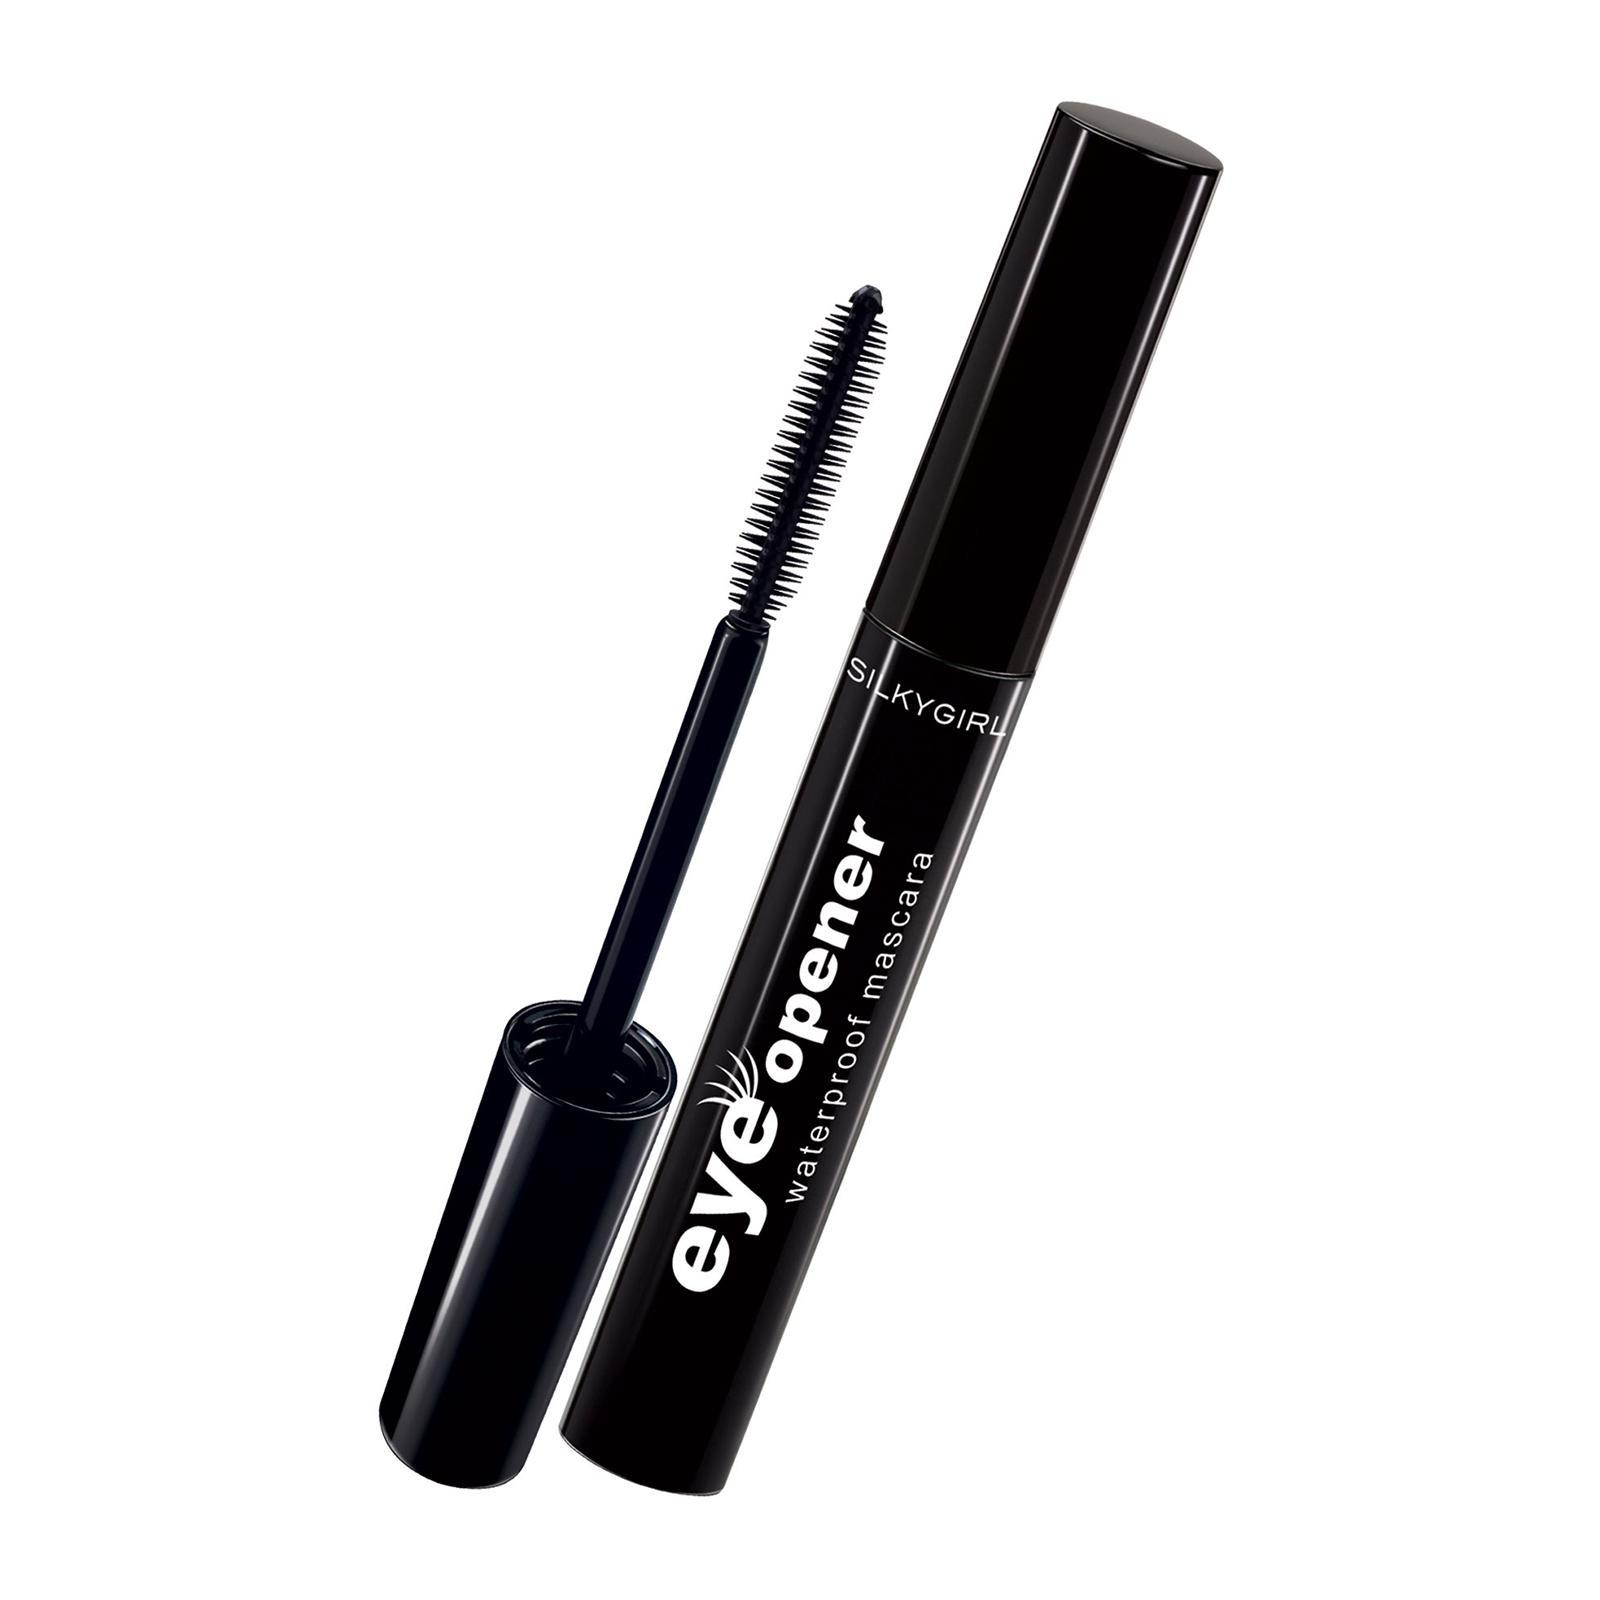 SilkyGirl Eye Opener Waterproof Mascara 01 Blackest Black